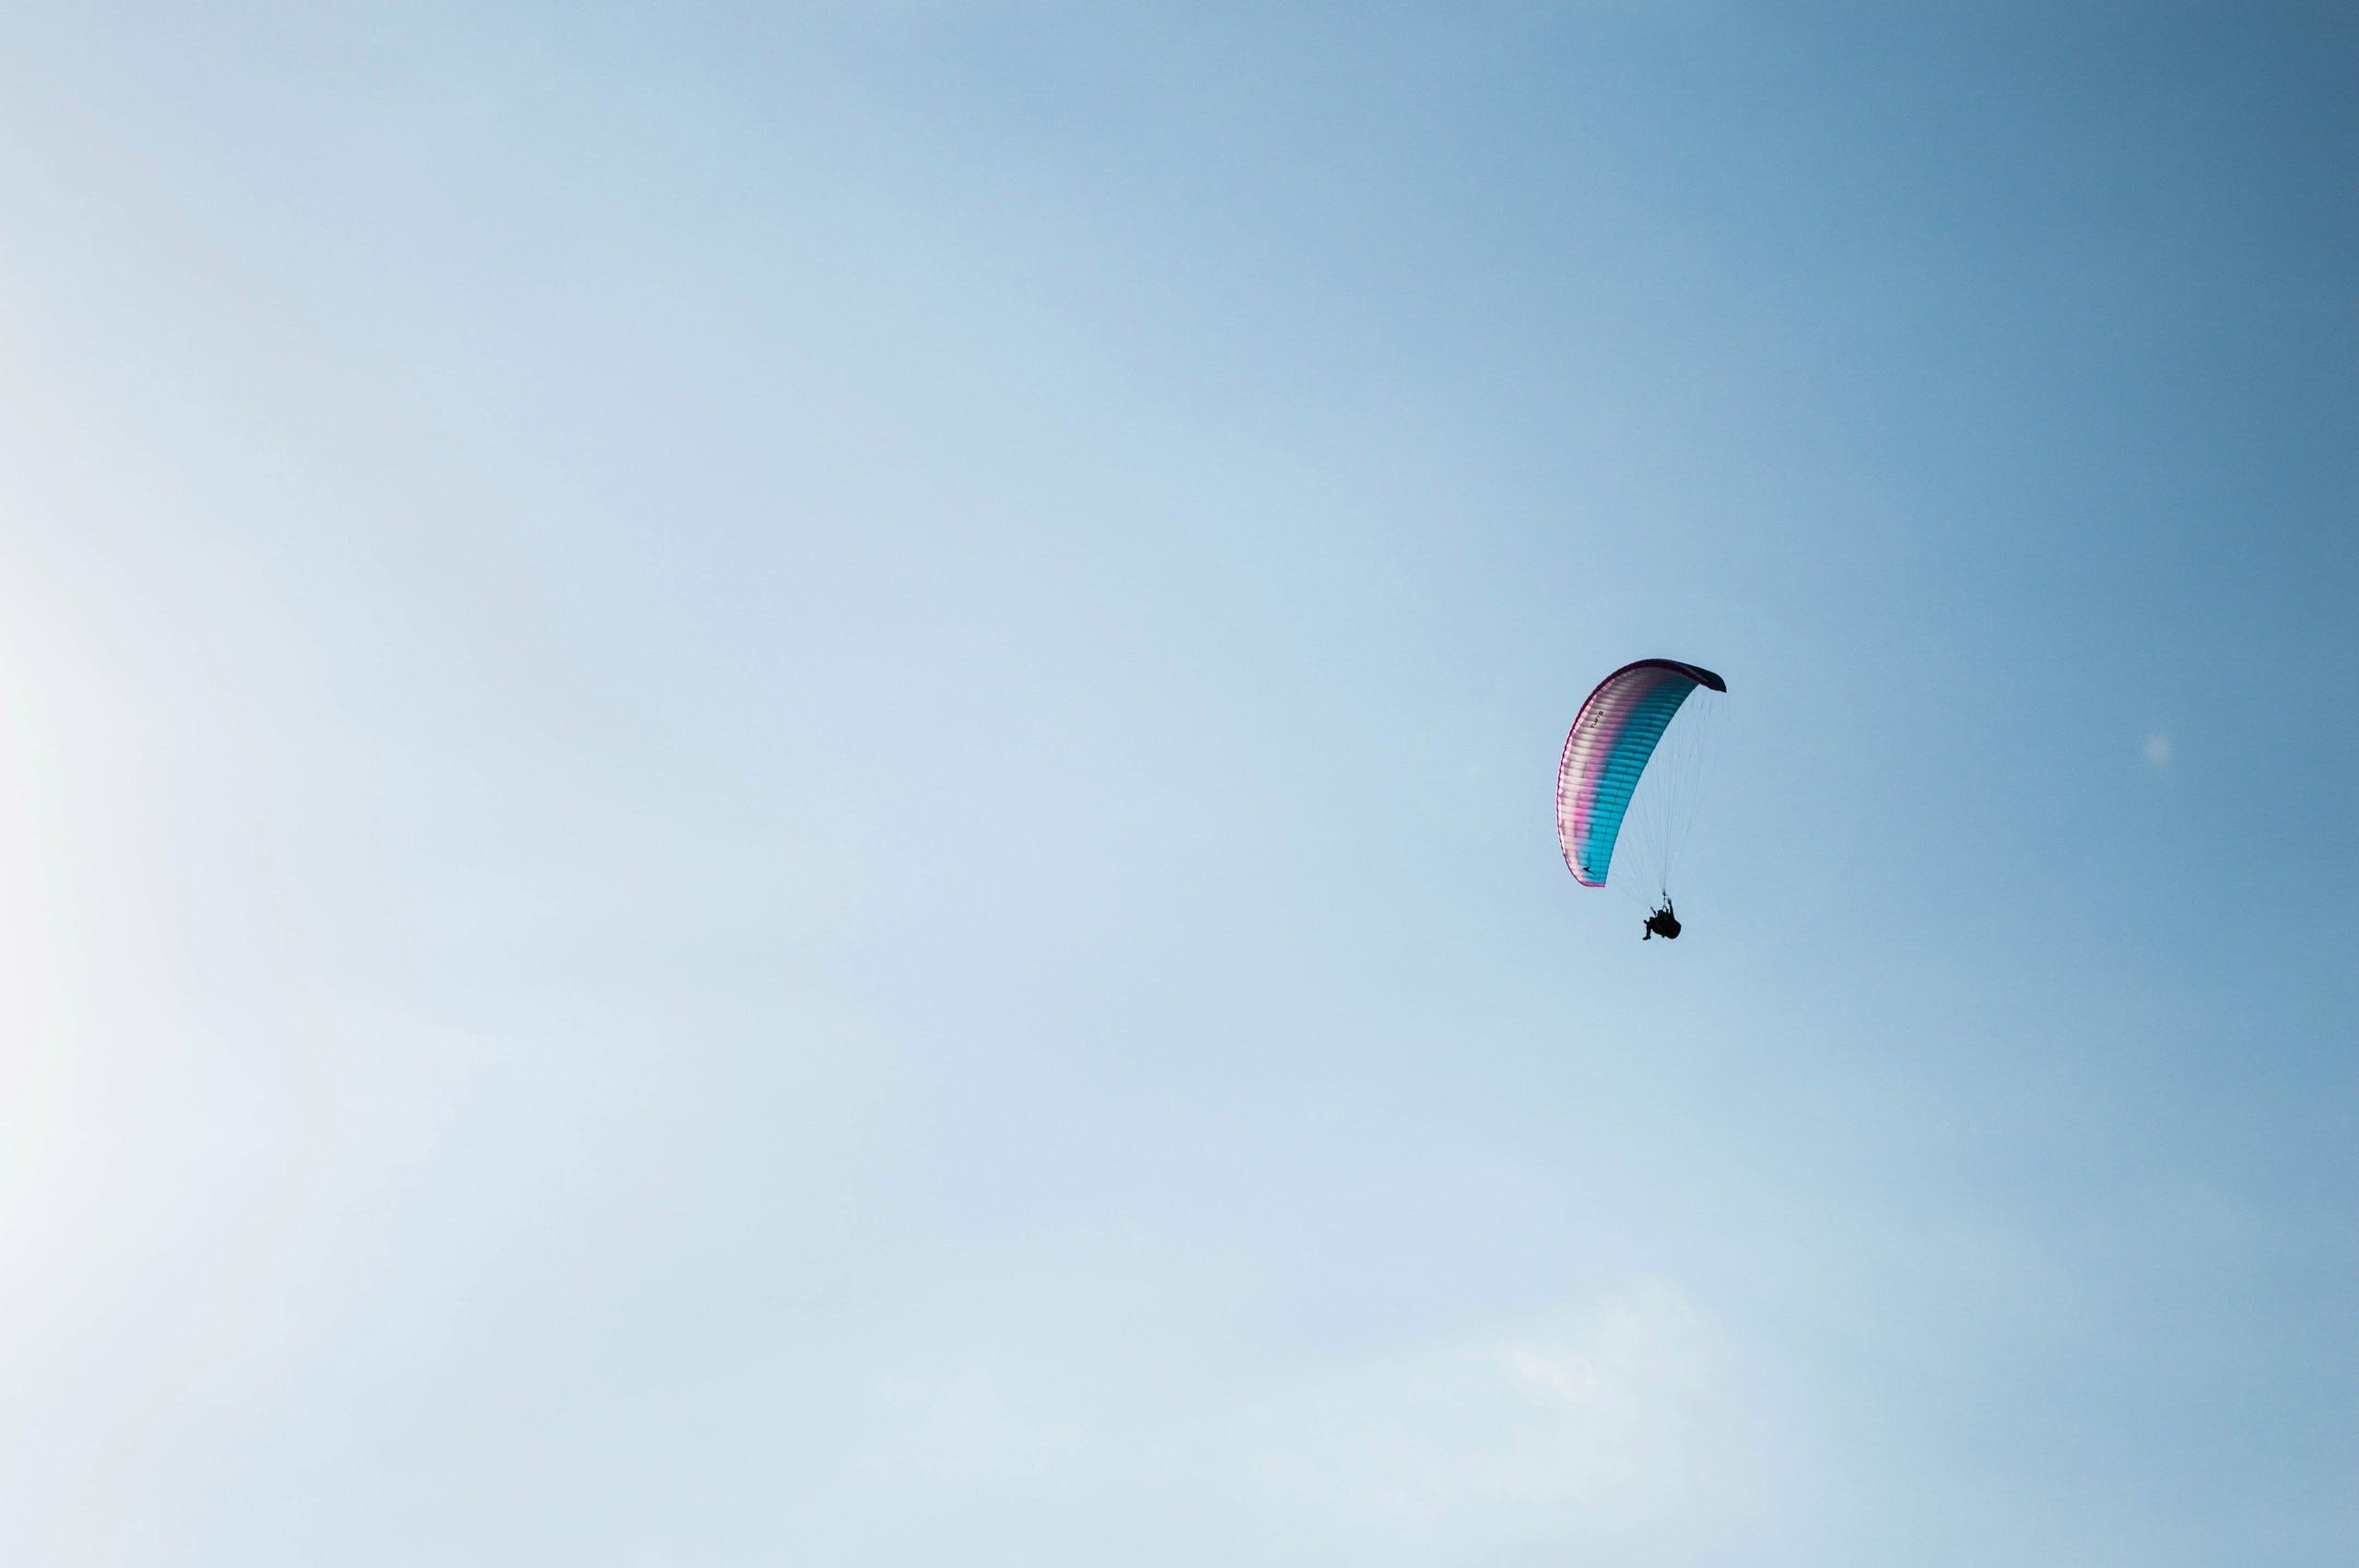 Photo of a Person Paragliding